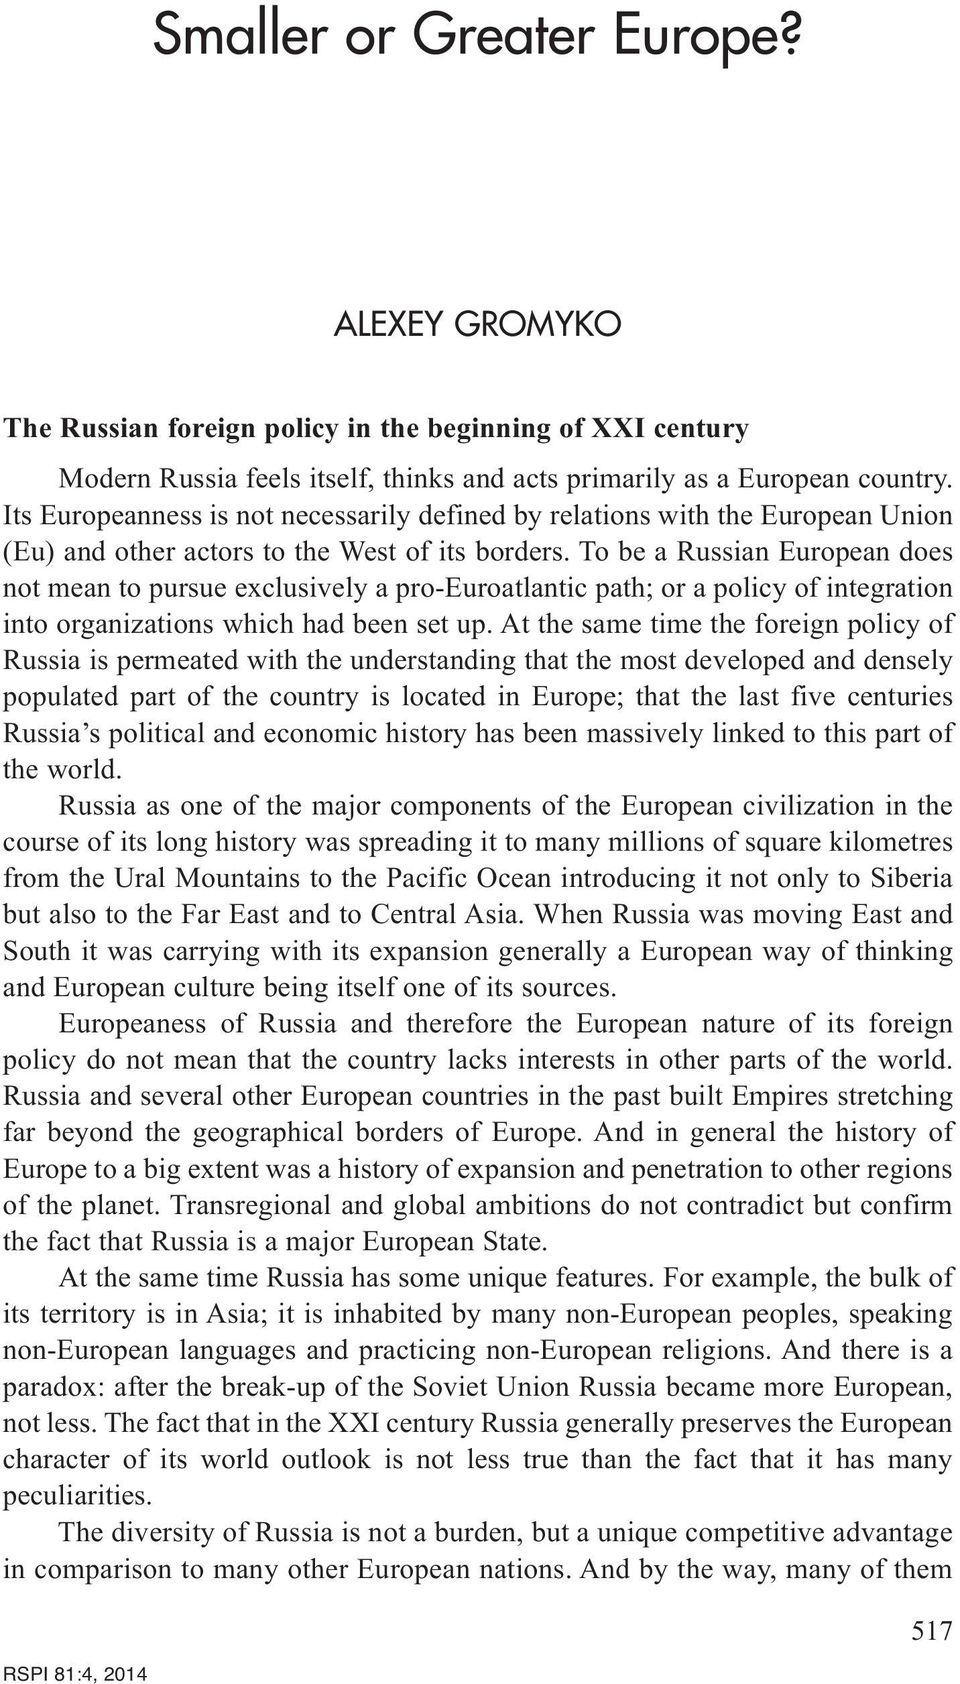 To be a Russian European does not mean to pursue exclusively a pro-euroatlantic path; or a policy of integration into organizations which had been set up.